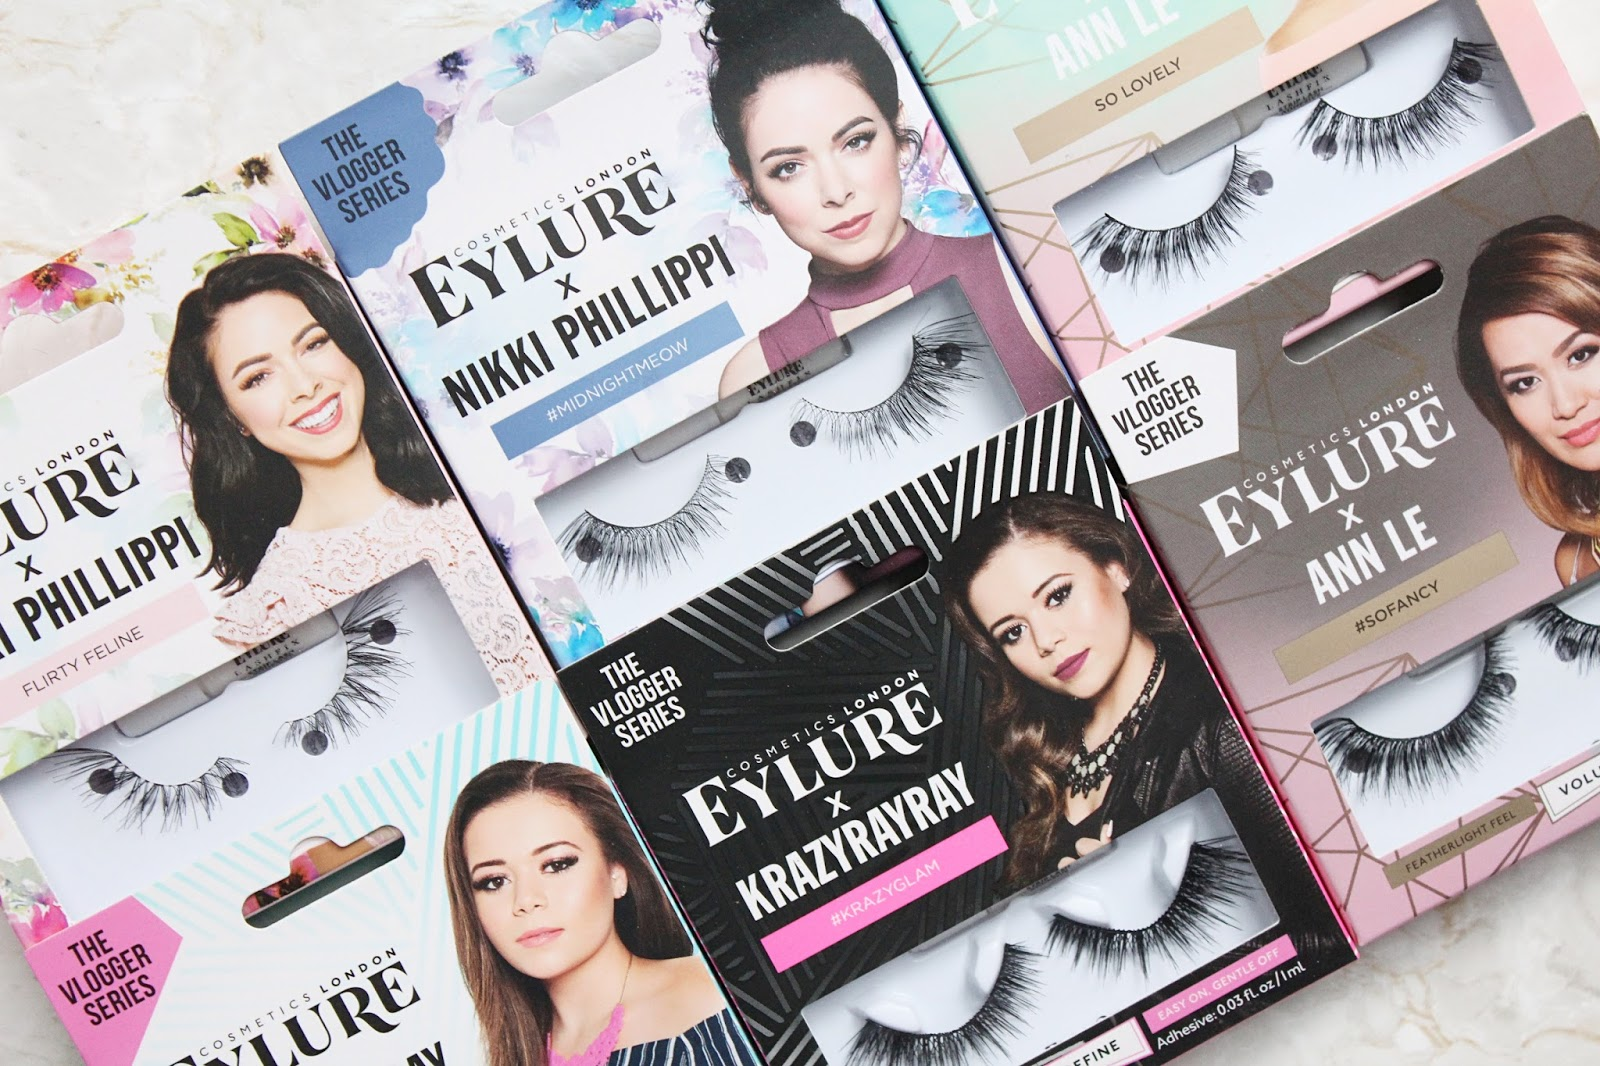 Eylure Vlogger Series